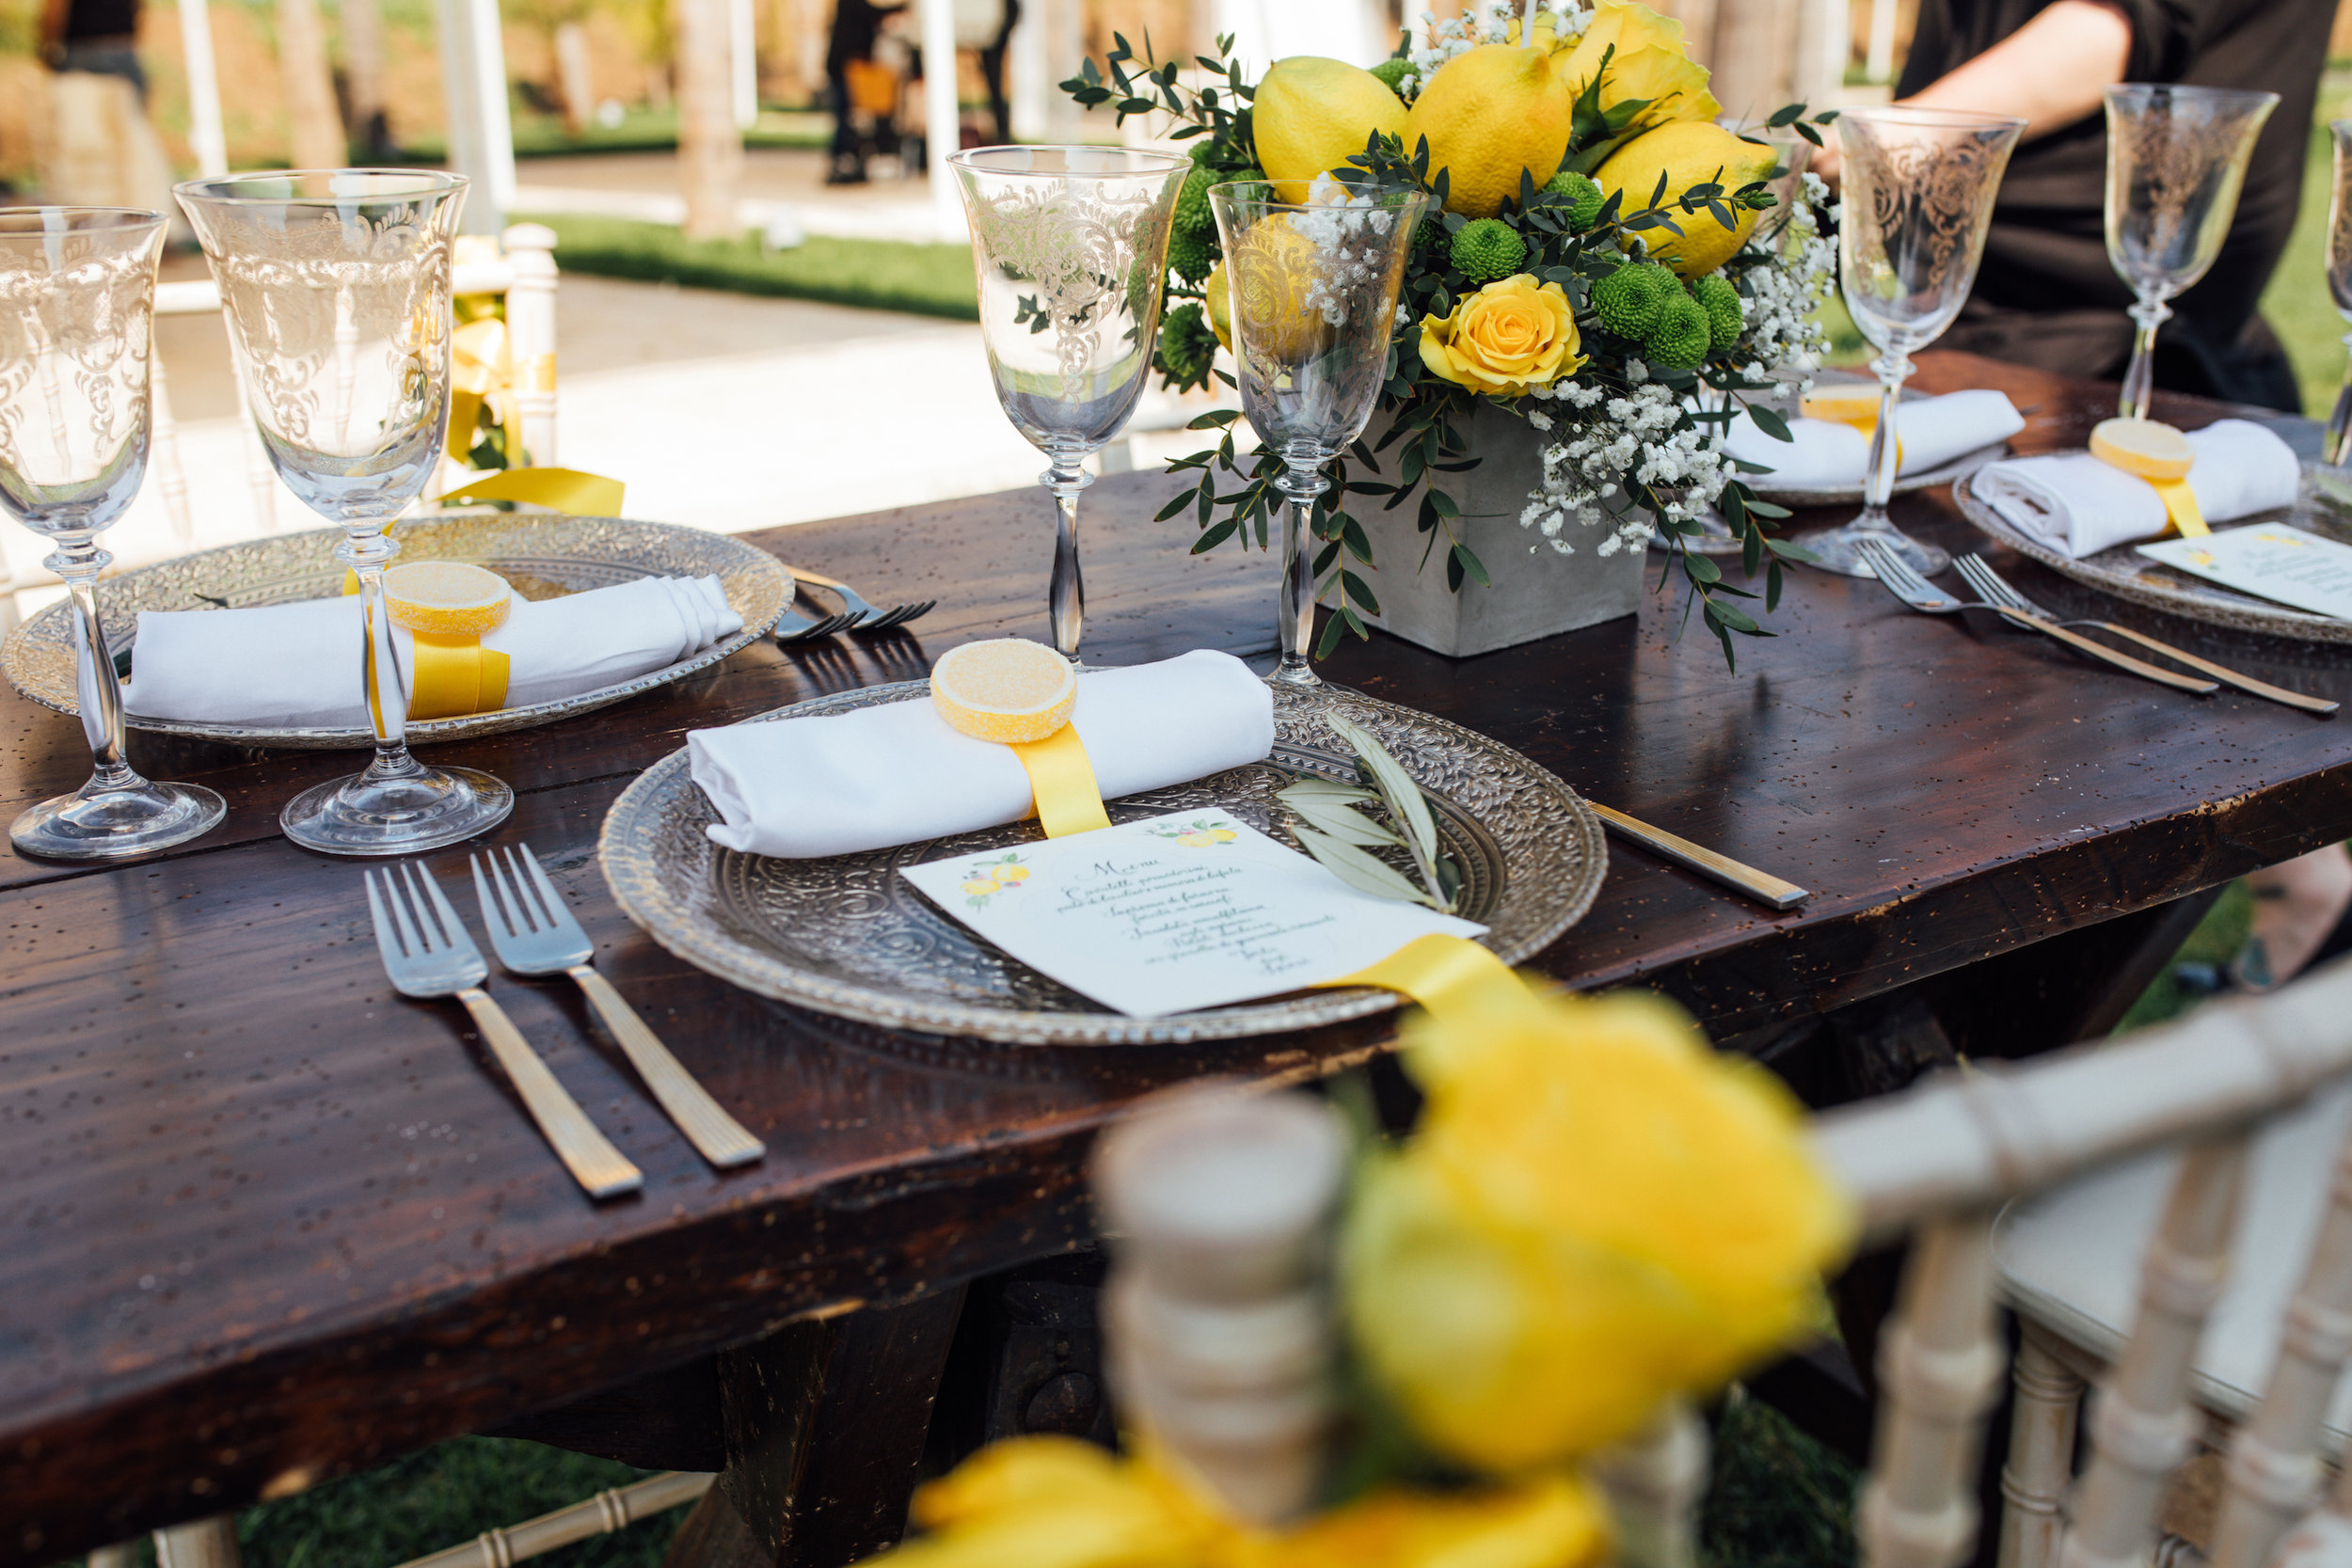 Lemon Inspired Tablescape from a Garden Wedding Styled Shoot in Rome Italy - by Jess Palatucci Photography - as seen on www.BrendasWeddingBlog.com